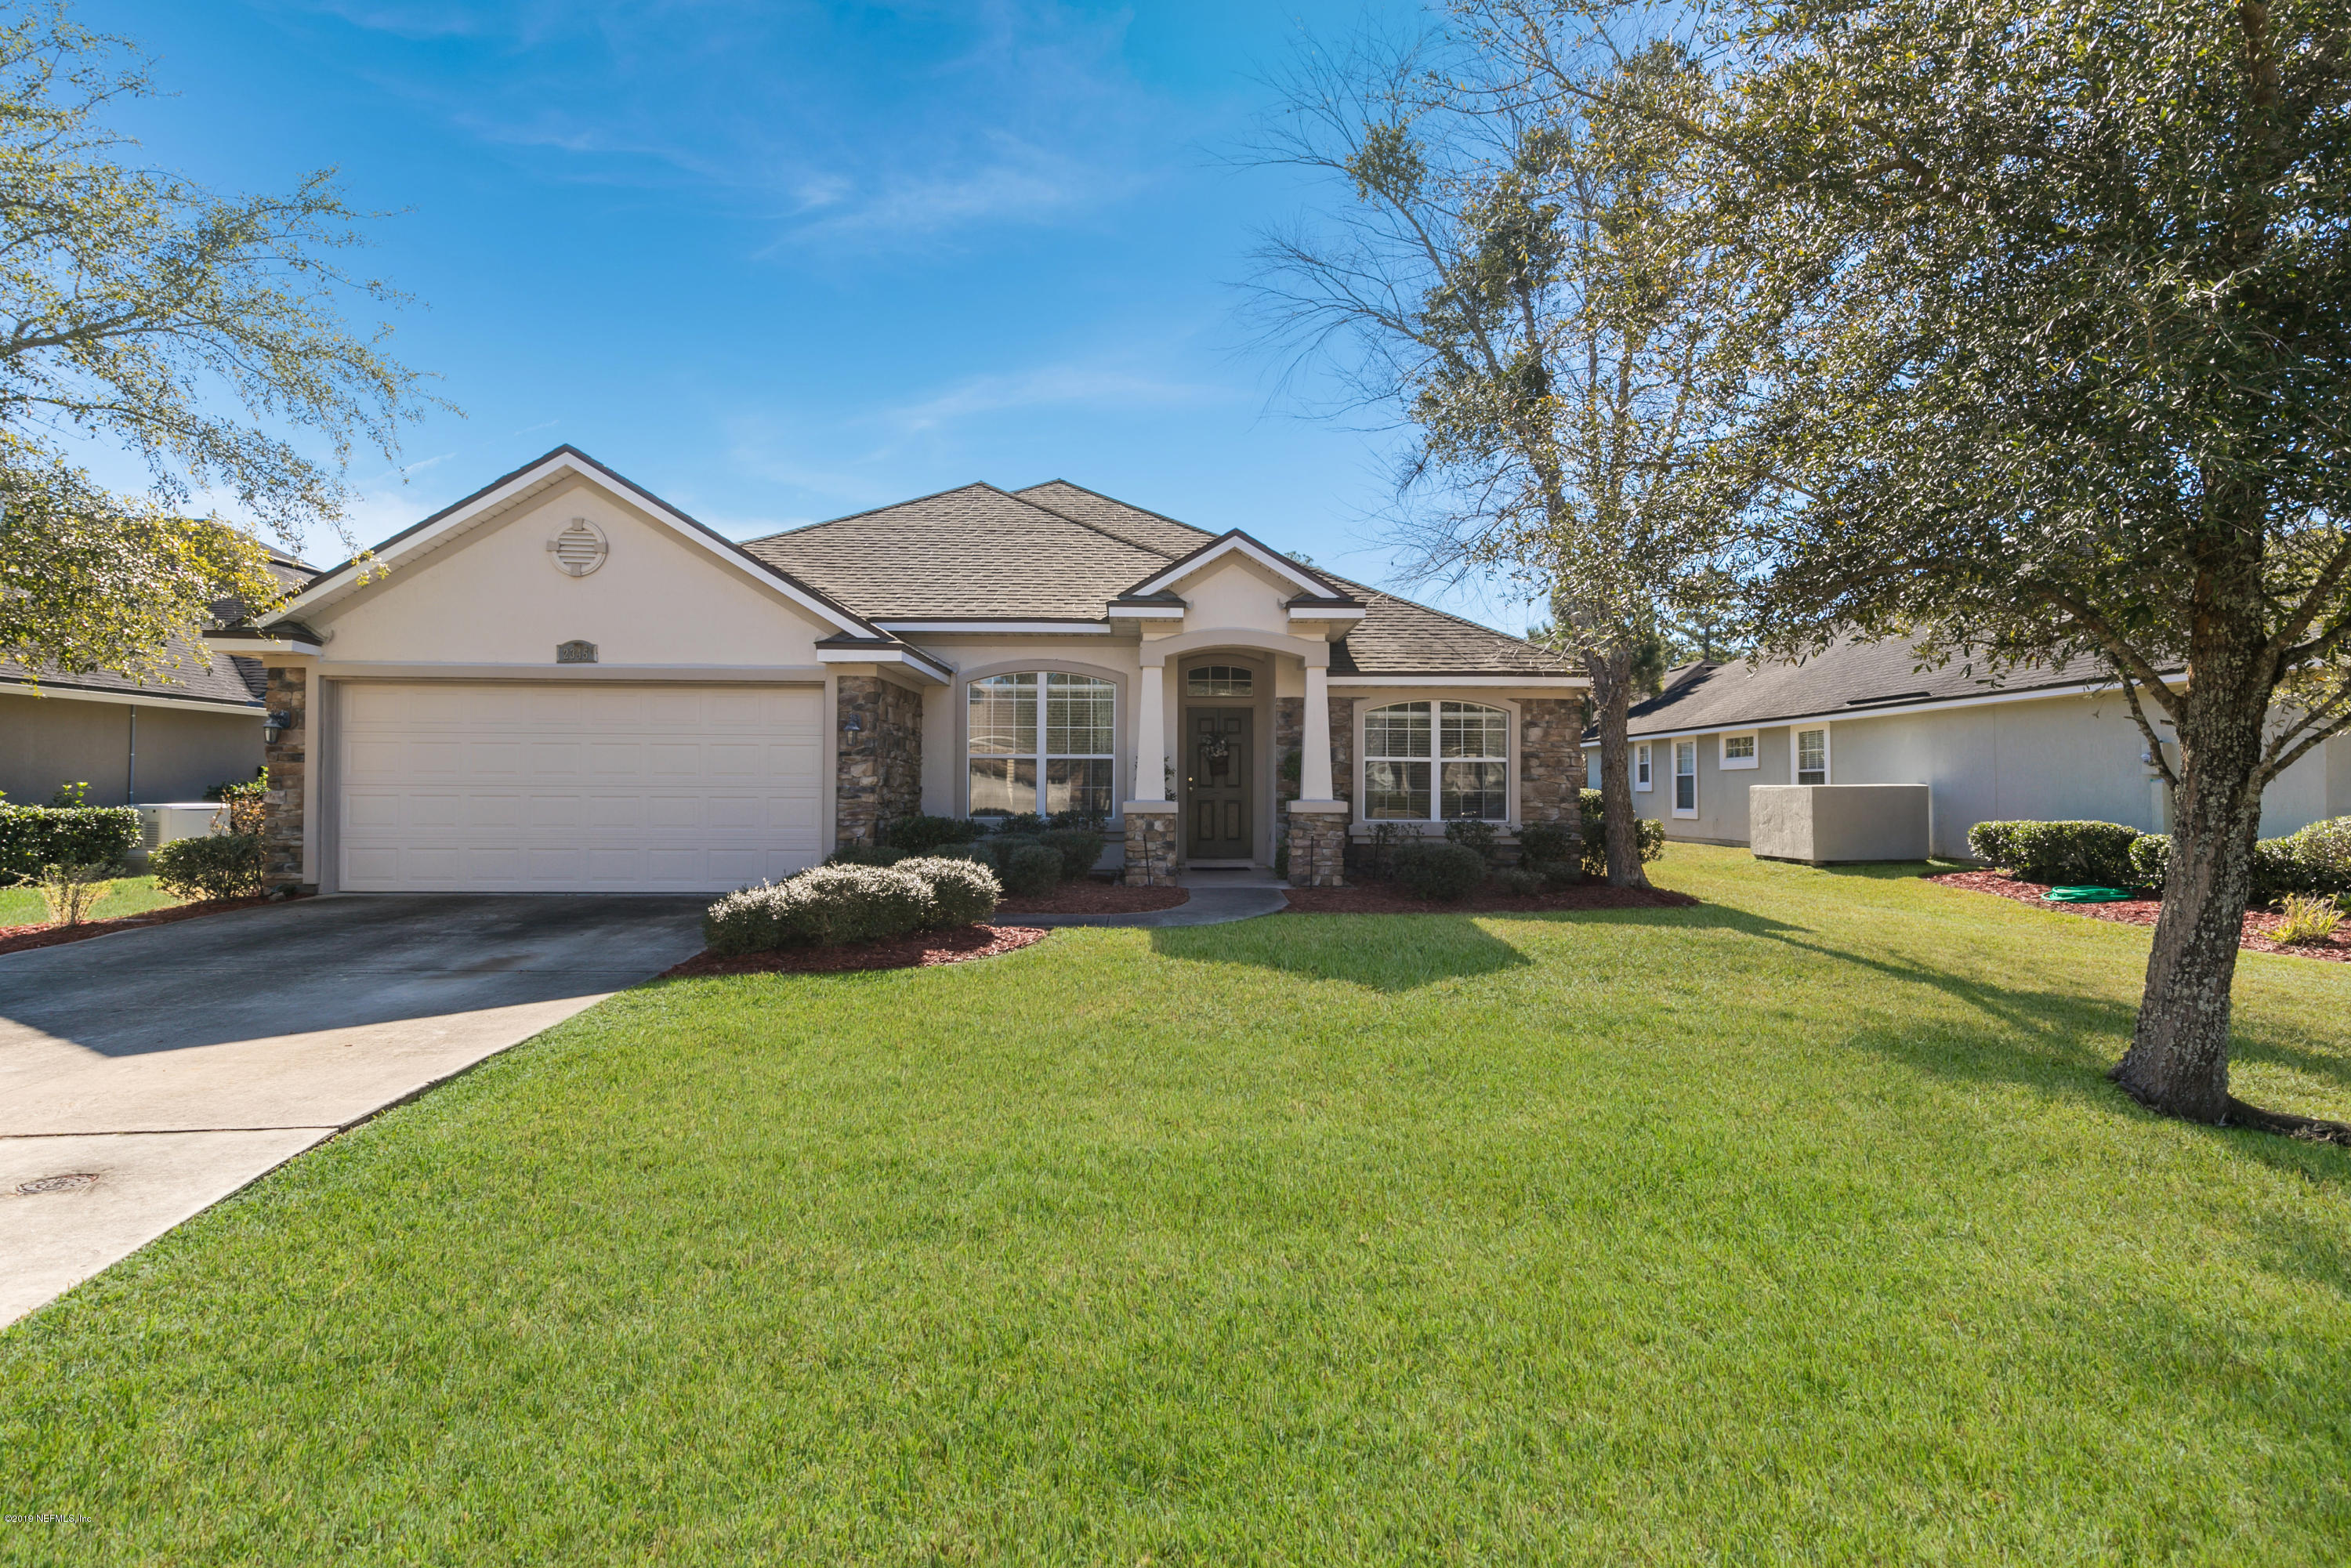 2345 COUNTRY SIDE, FLEMING ISLAND, FLORIDA 32003, 3 Bedrooms Bedrooms, ,2 BathroomsBathrooms,Residential - single family,For sale,COUNTRY SIDE,975780